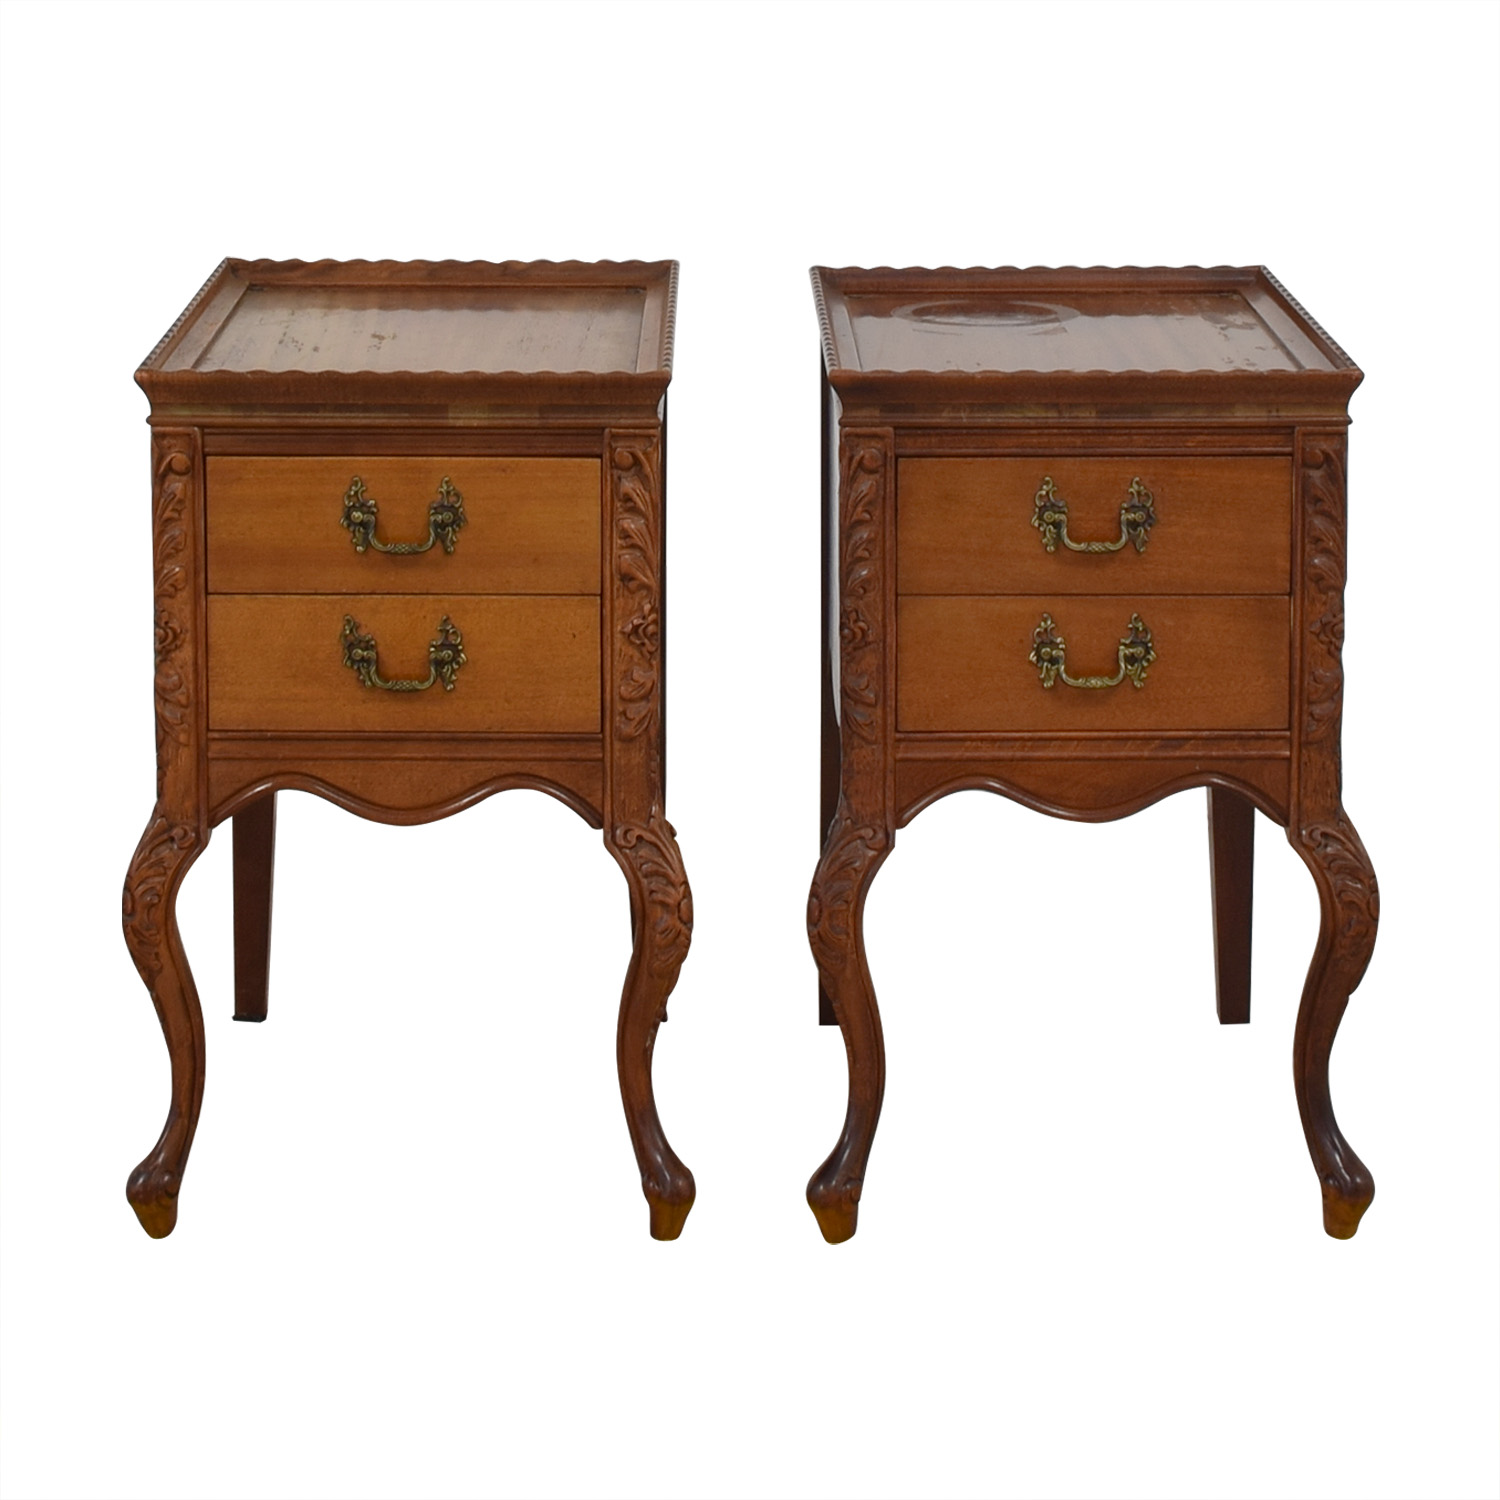 shop Holland House Holland House Antique End Tables online